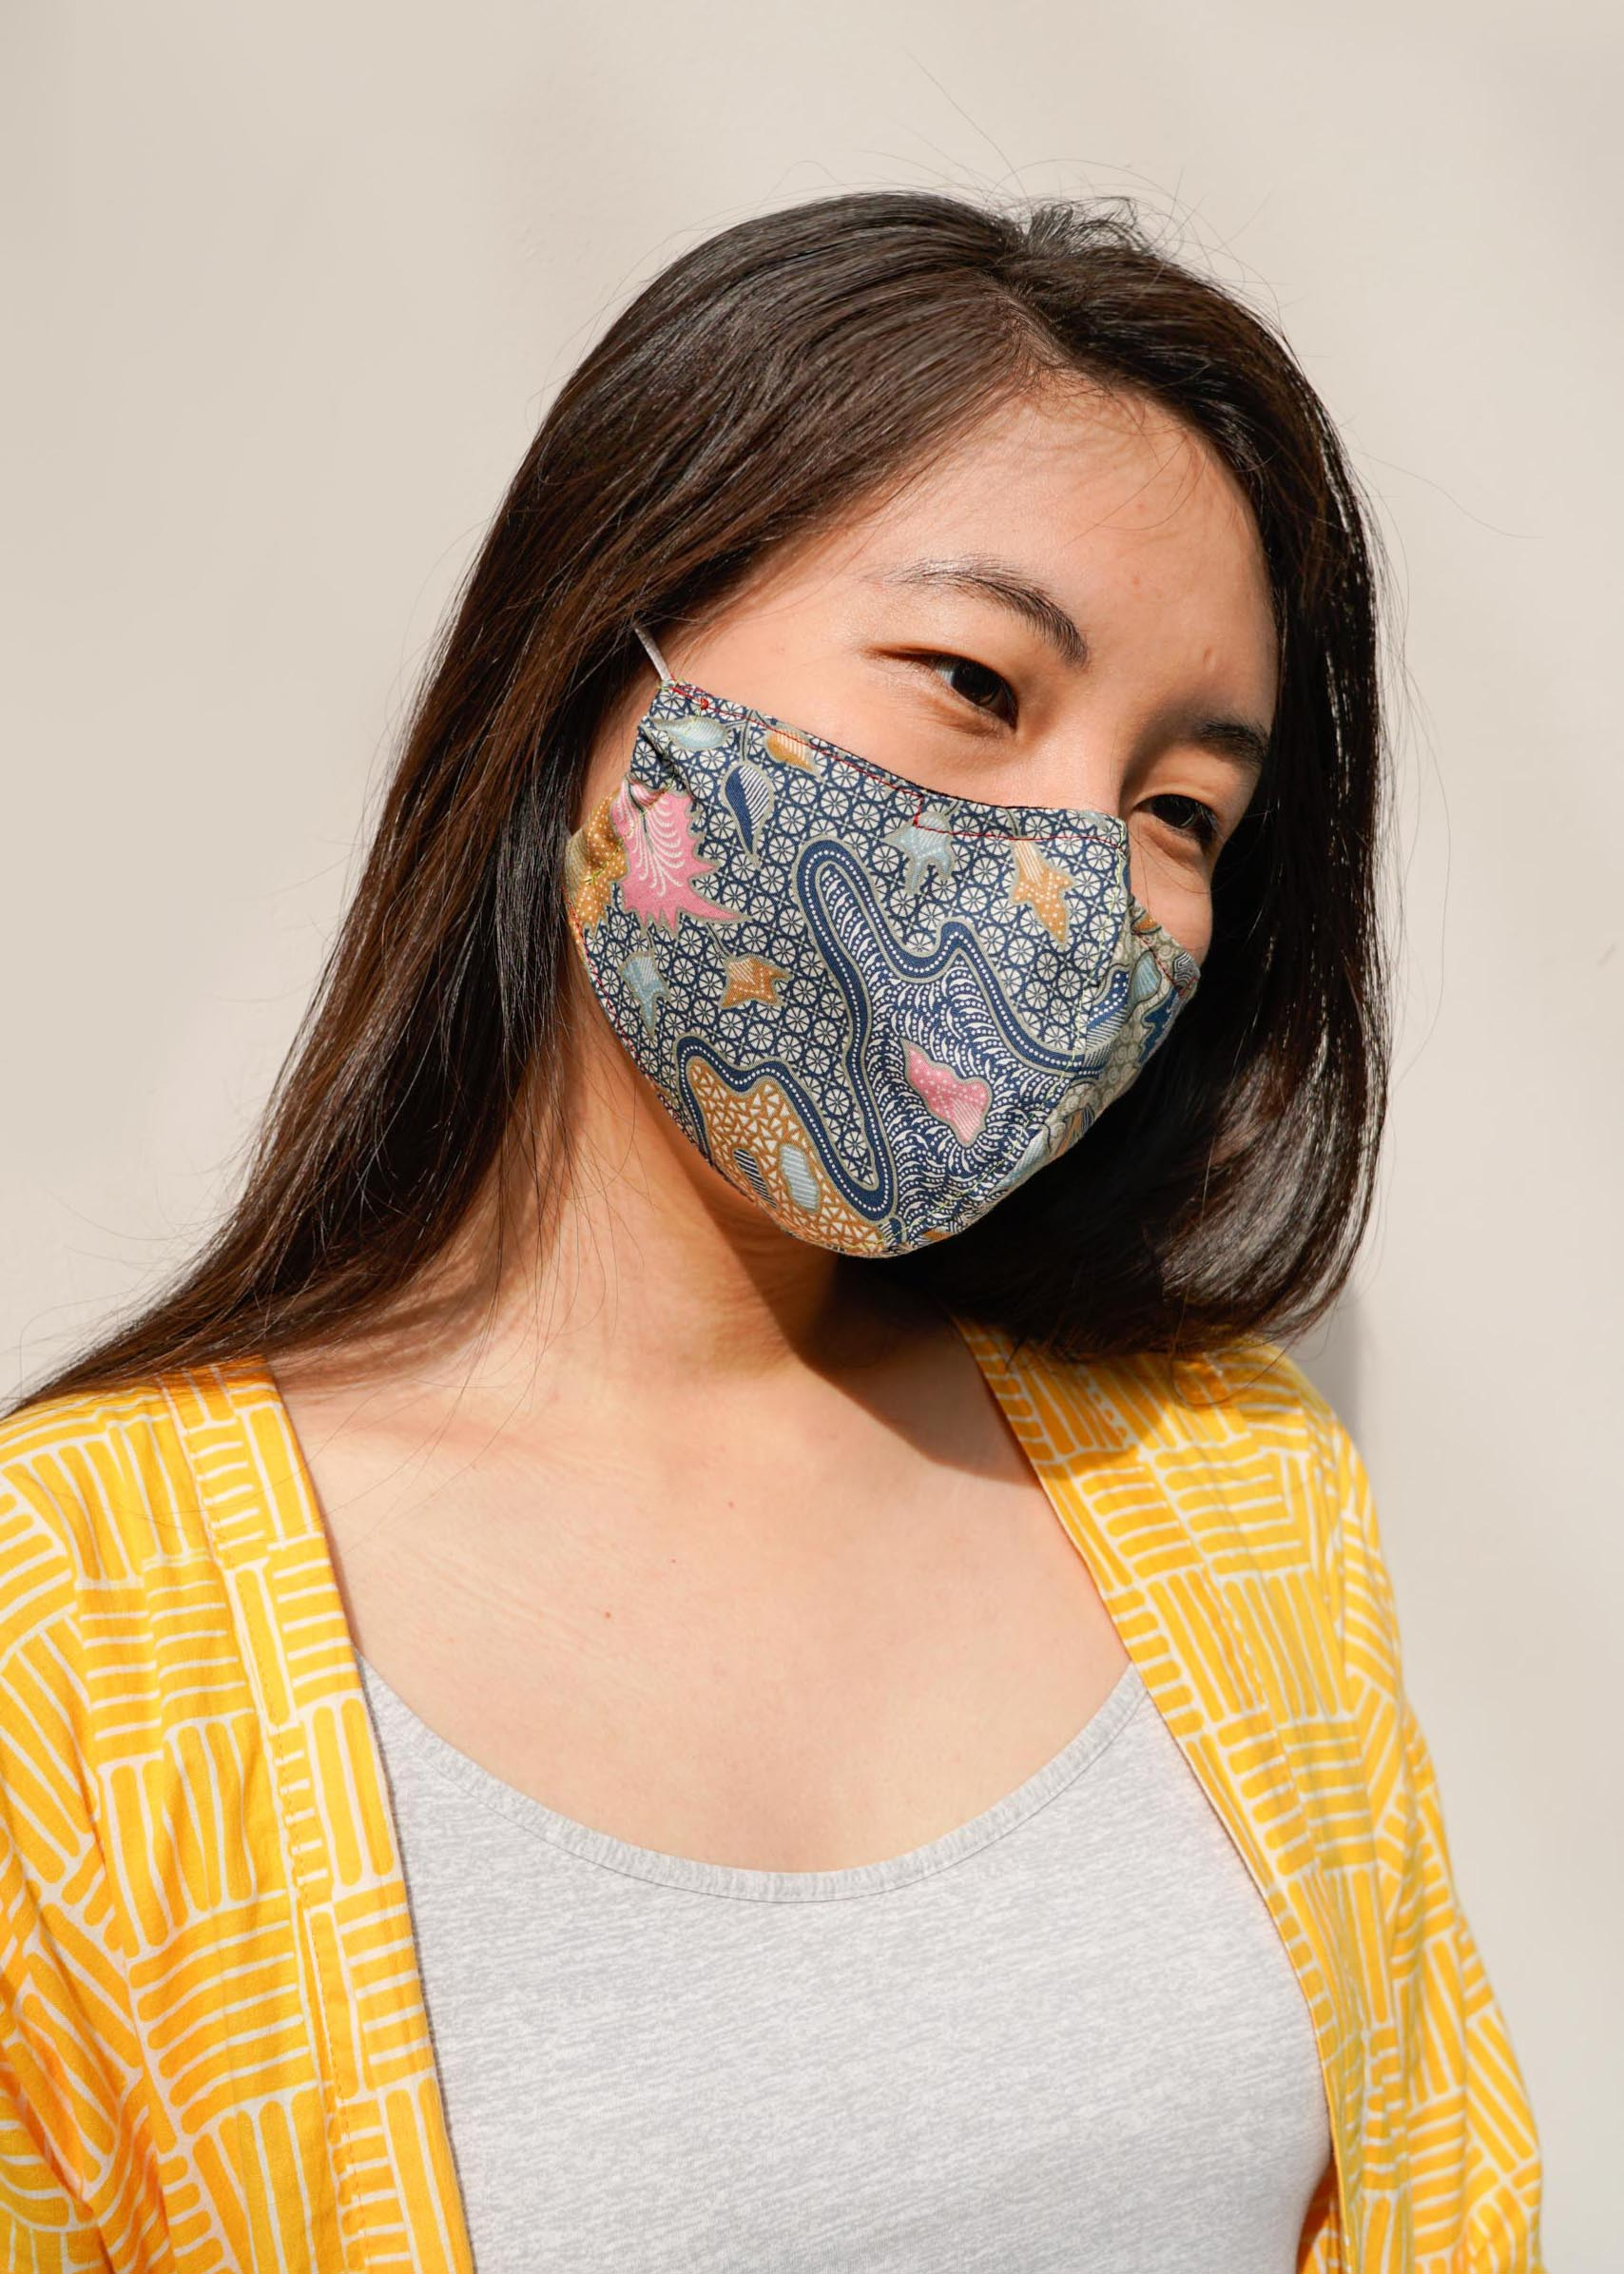 (PRE-ORDER) Fitted Reusable Batik Mask (filter pocket, nose wire)